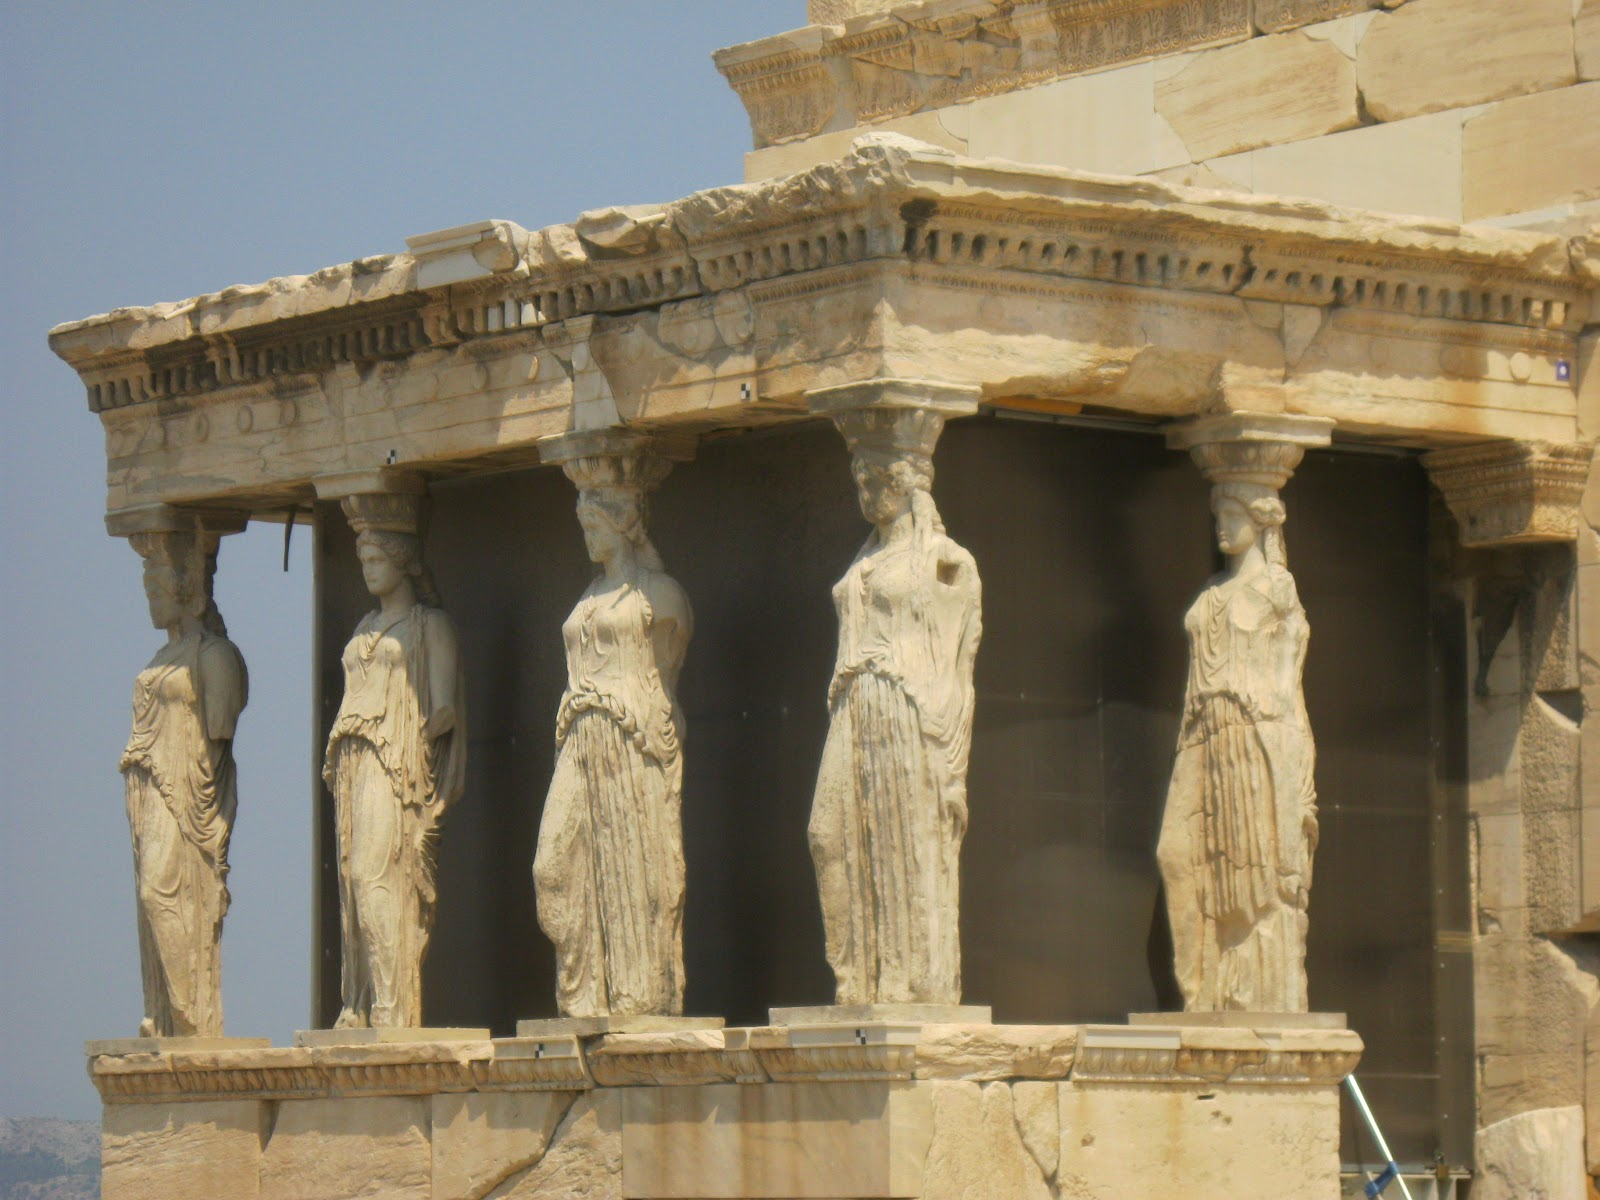 The statue of Zeus at Olympia Wallpapers High Quality Download 1600x1200